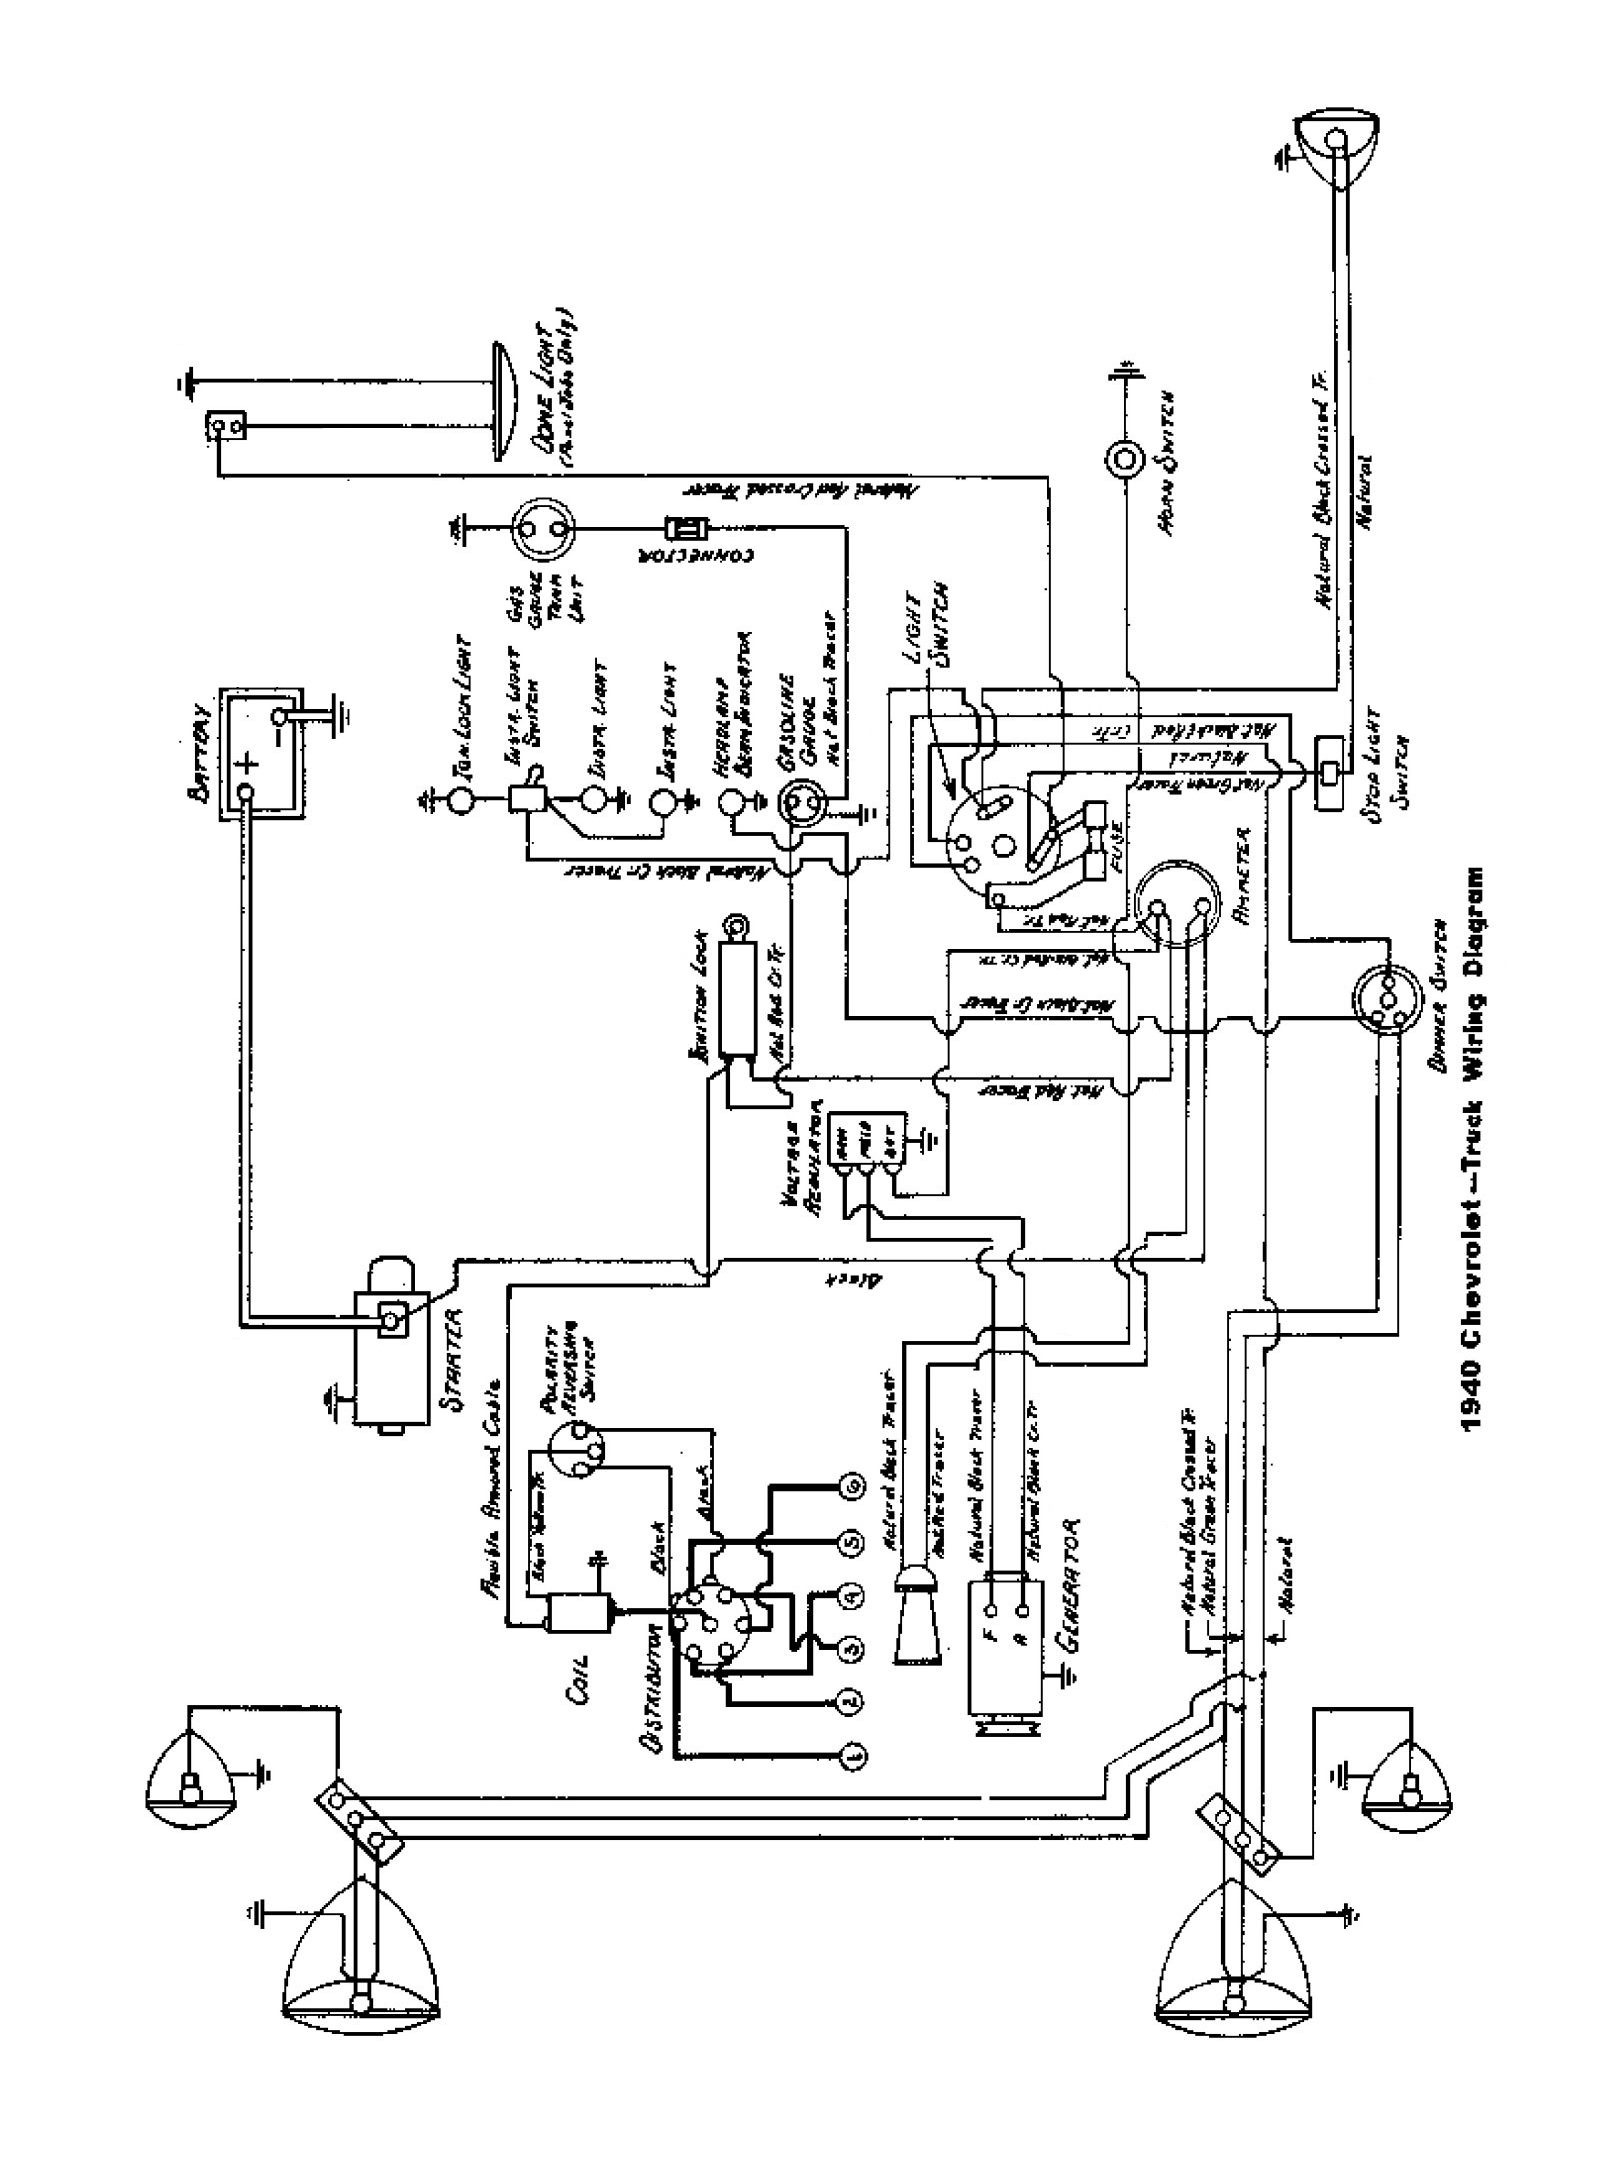 1987 chevy c10 wiring diagram pdf with Download 454 Chevy Engine Manual Free on Wiring Harness Diagram1996 Toyota besides 87 93 Wiper Schematics likewise 3000 Allison Transmission Wiring Diagram 6510666190 additionally 1 Wire Alternator as well Ford Tail Light Wiring Diagram.